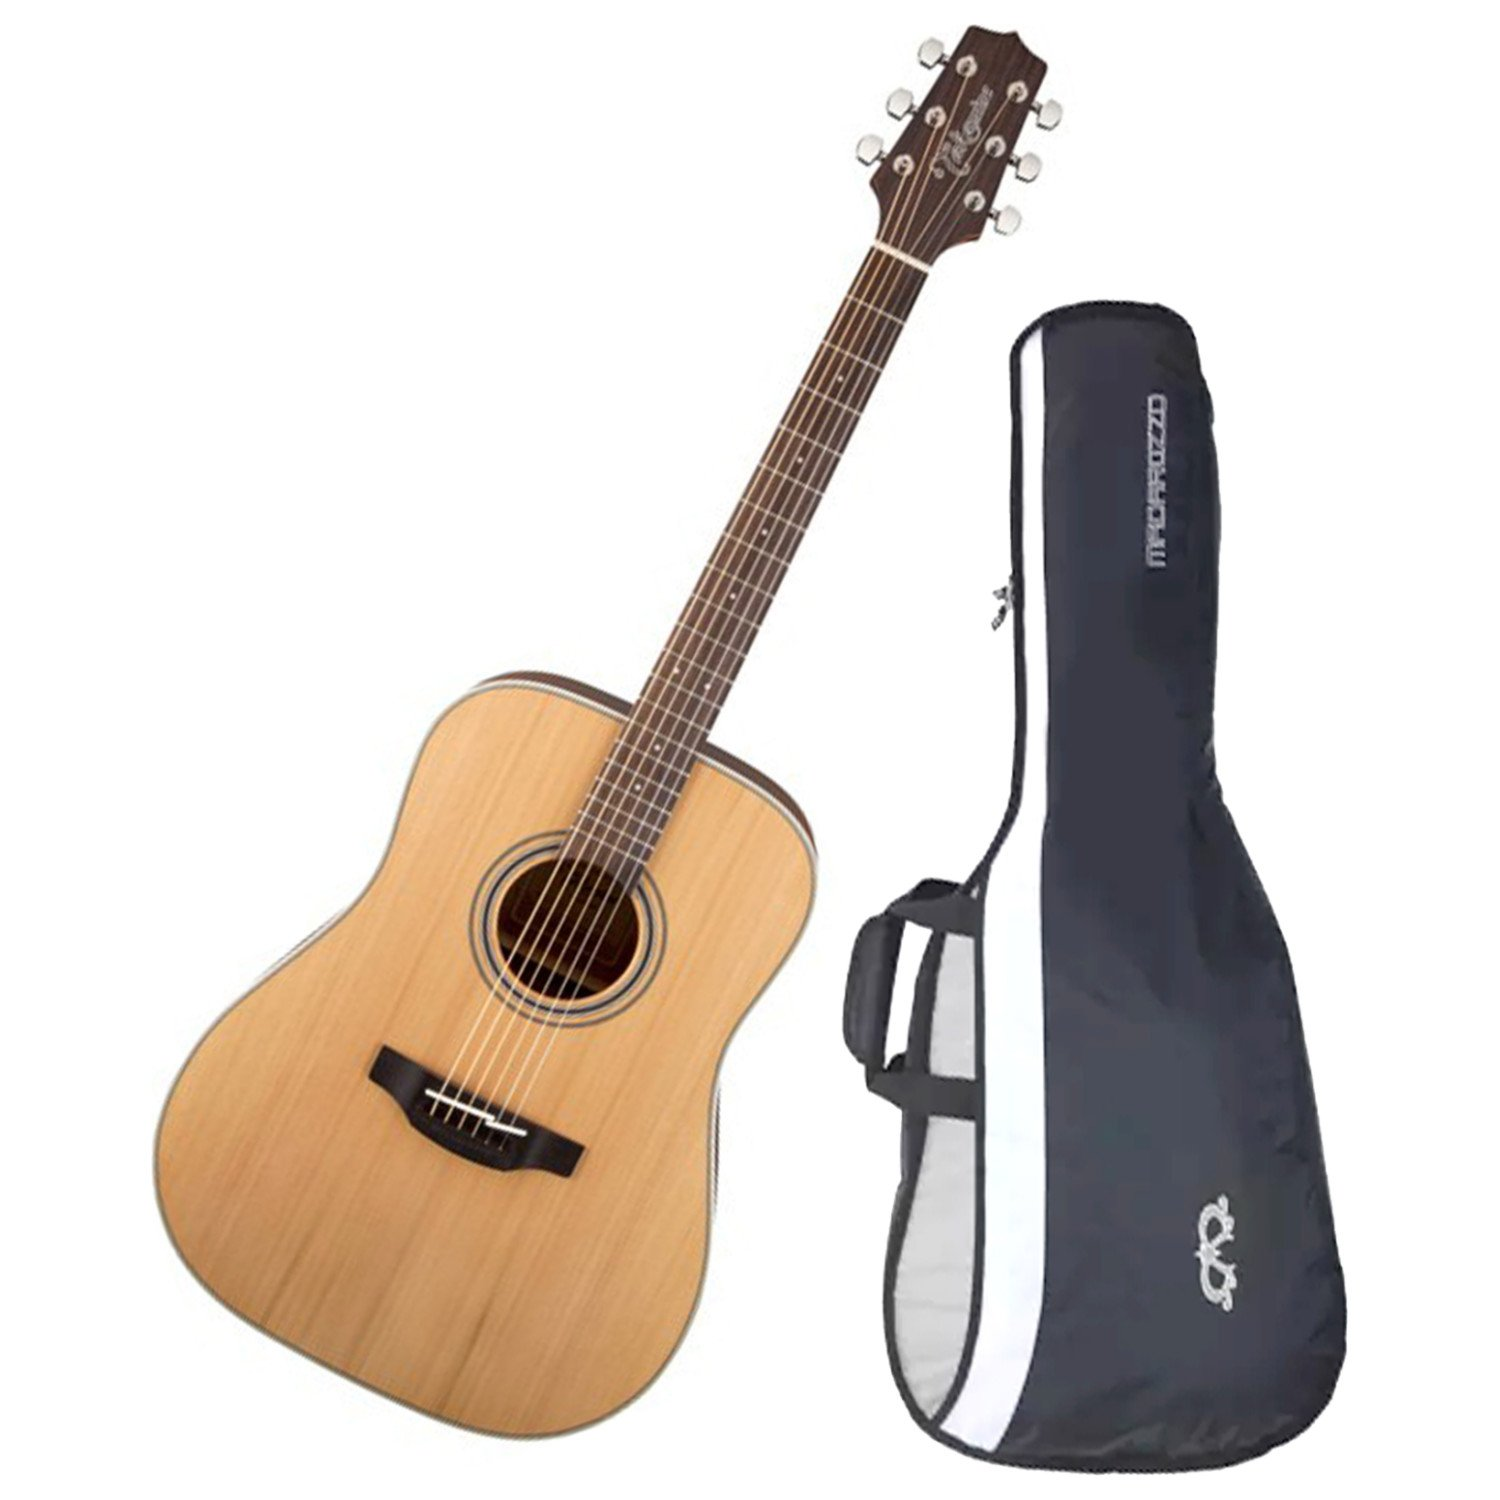 Takamine GD20-NS Satin Natural Acoustic Guitar Dreadnought Spruce Top with Bag by Takamine